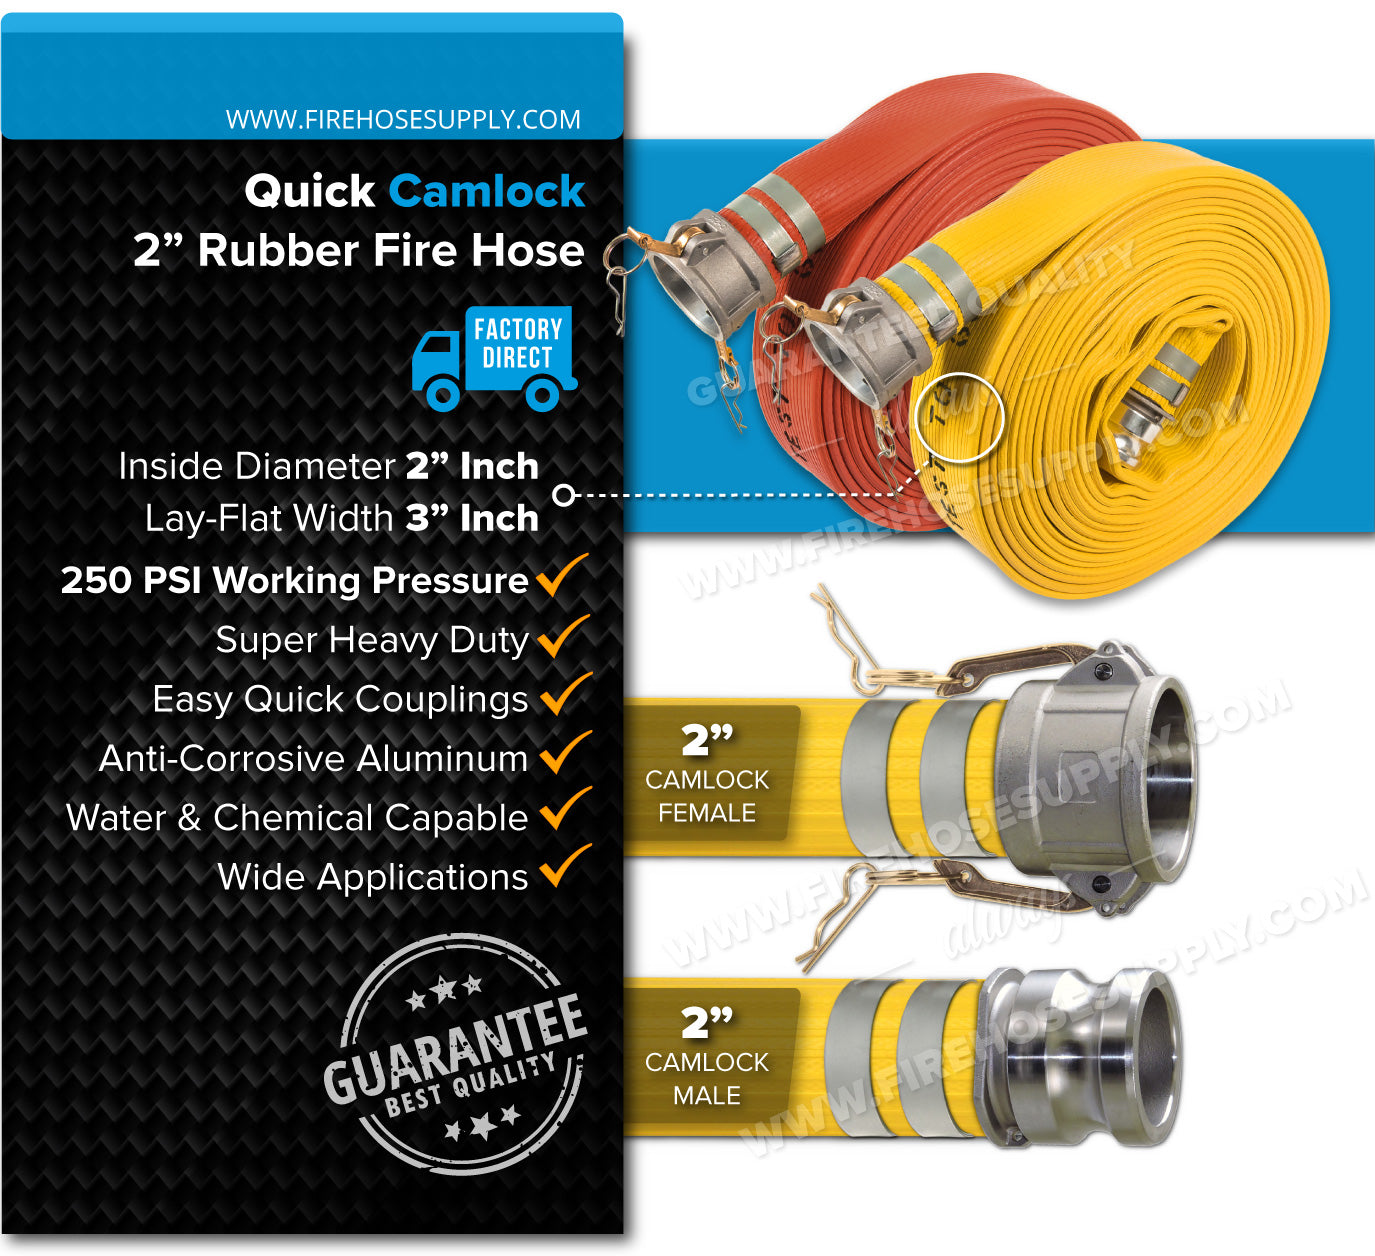 2 Inch Rubber Camlock Fire Hose Overview